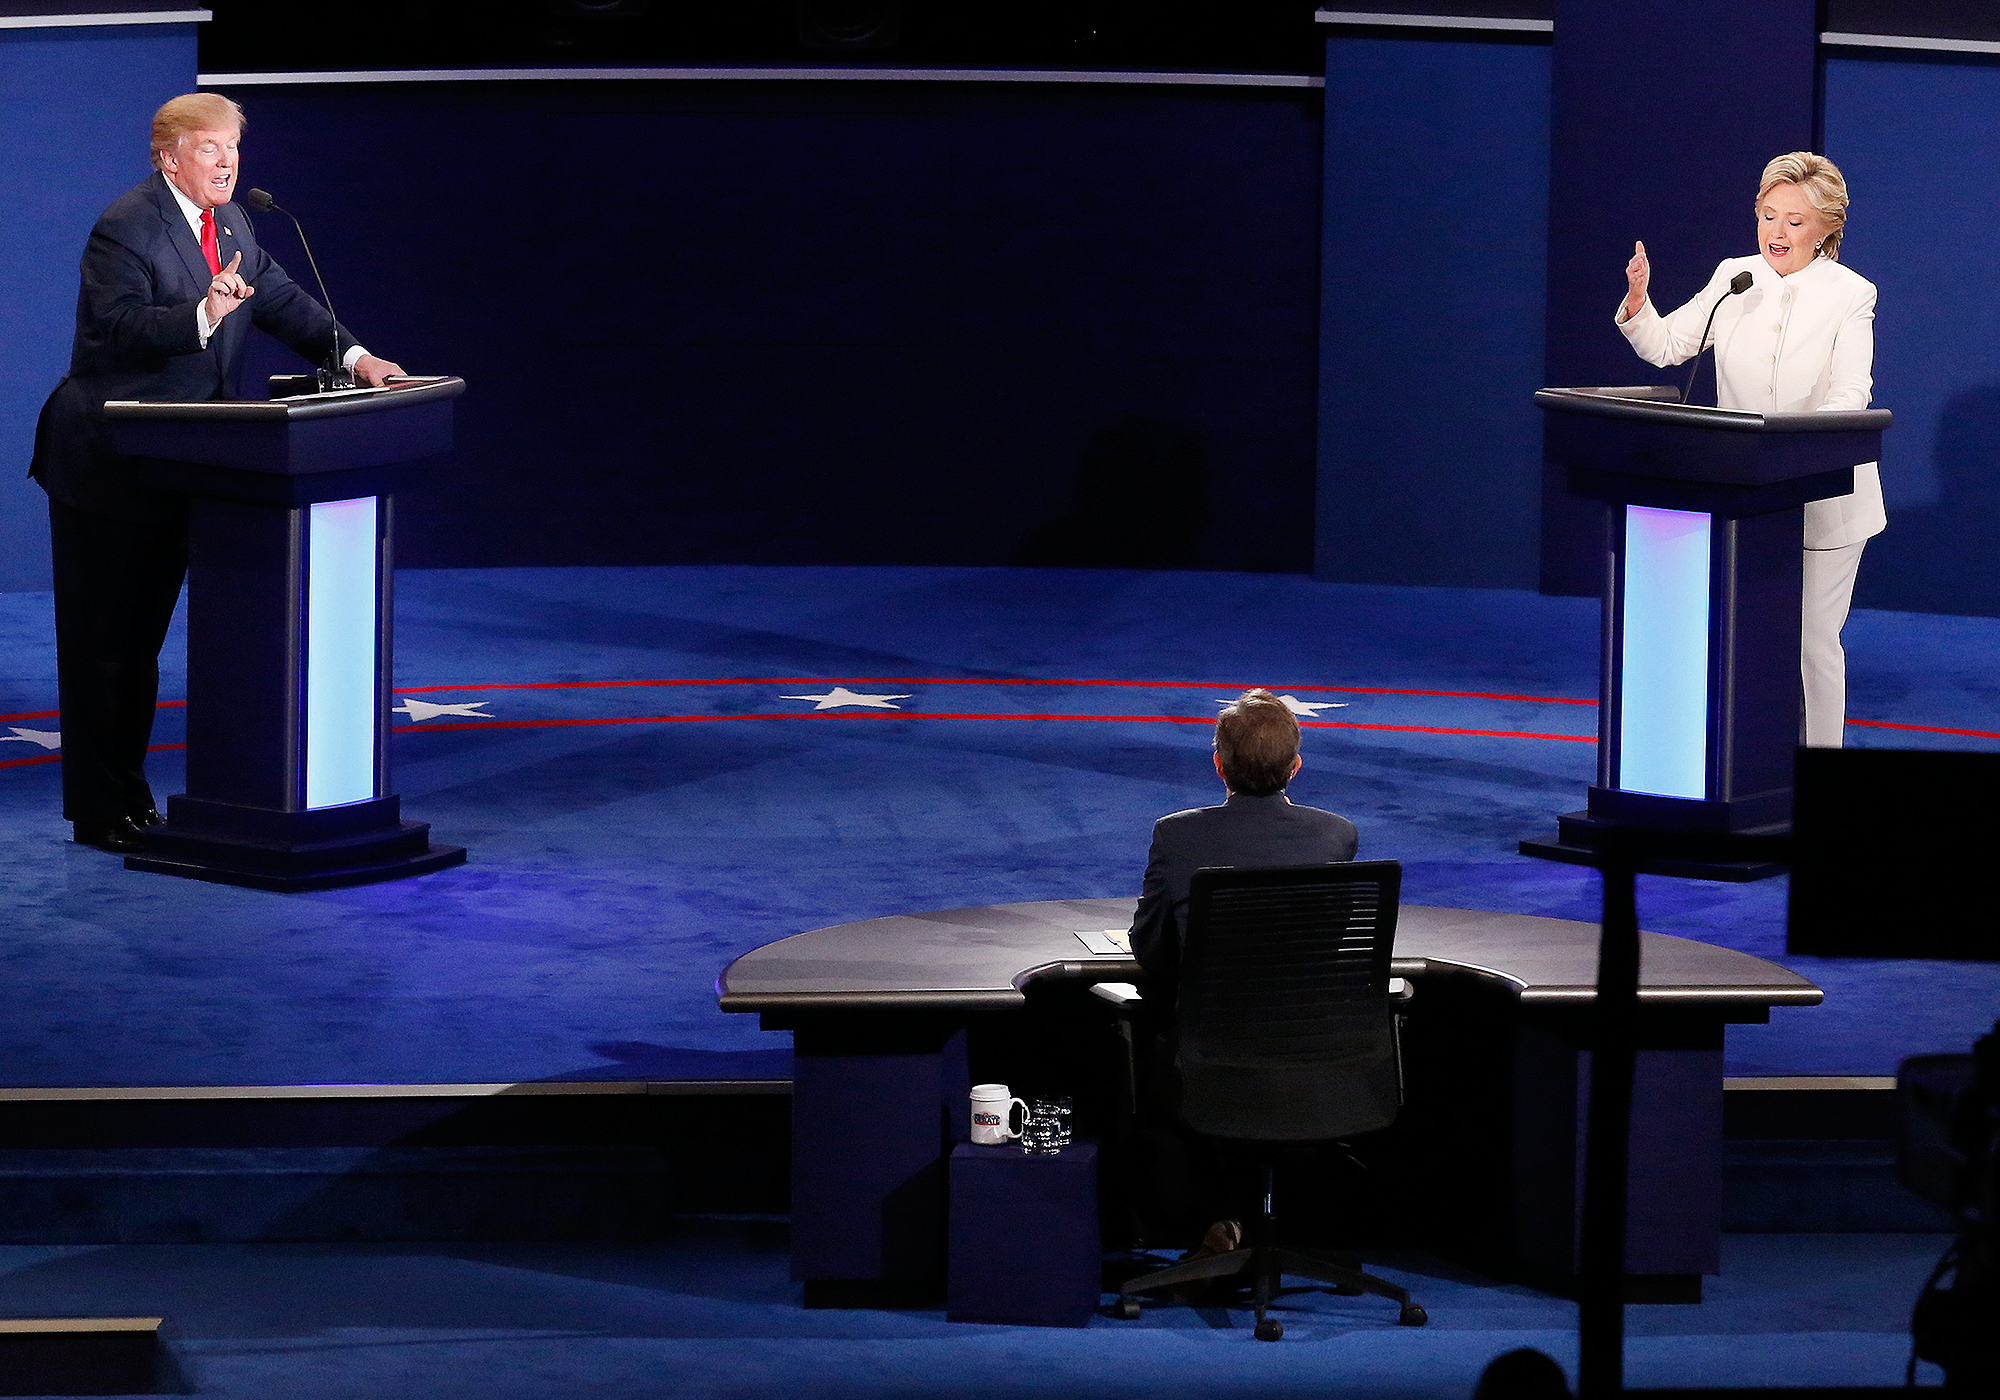 """The NFL has had the bad luck of going head-to-head against two of the most highly-watched presidential debates in history. The league sent out a memo pointing to the hotly contested 2000 election and a similar decrease in ratings. But it's not just that those two primetime games—the election seems to be robbing attention away from everything in American culture. A friend told me the other day that he misses following the Kardashians because he's so preoccupied with the election. """"Trump is ratings gold for the news networks,"""" says The MMQB's Andrew Brandt. """"He is taking viewers away from all non-news programming including, of course, NFL programming."""" The way Brandt sees it, it's a mistake to reach any conclusions about ratings until after Nov. 8."""